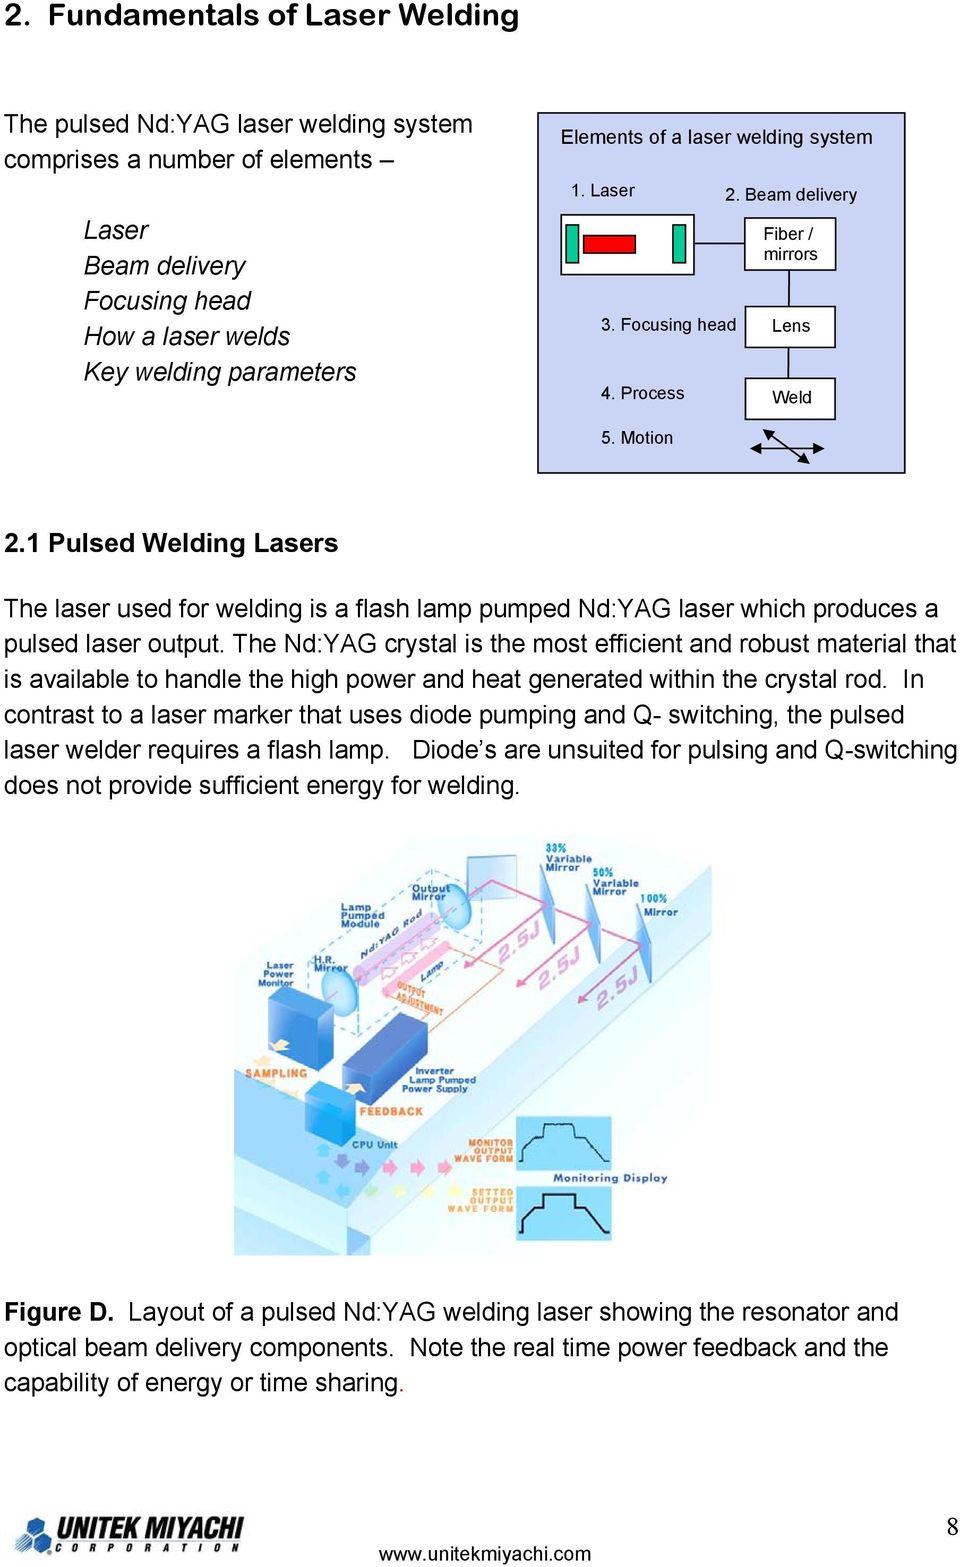 Laser Welding Diagram Unitek Miyachi Corporation Ndyag Guide Pdf 1 Pulsed Lasers The Used For Is A Flash Lamp Pumped Nd